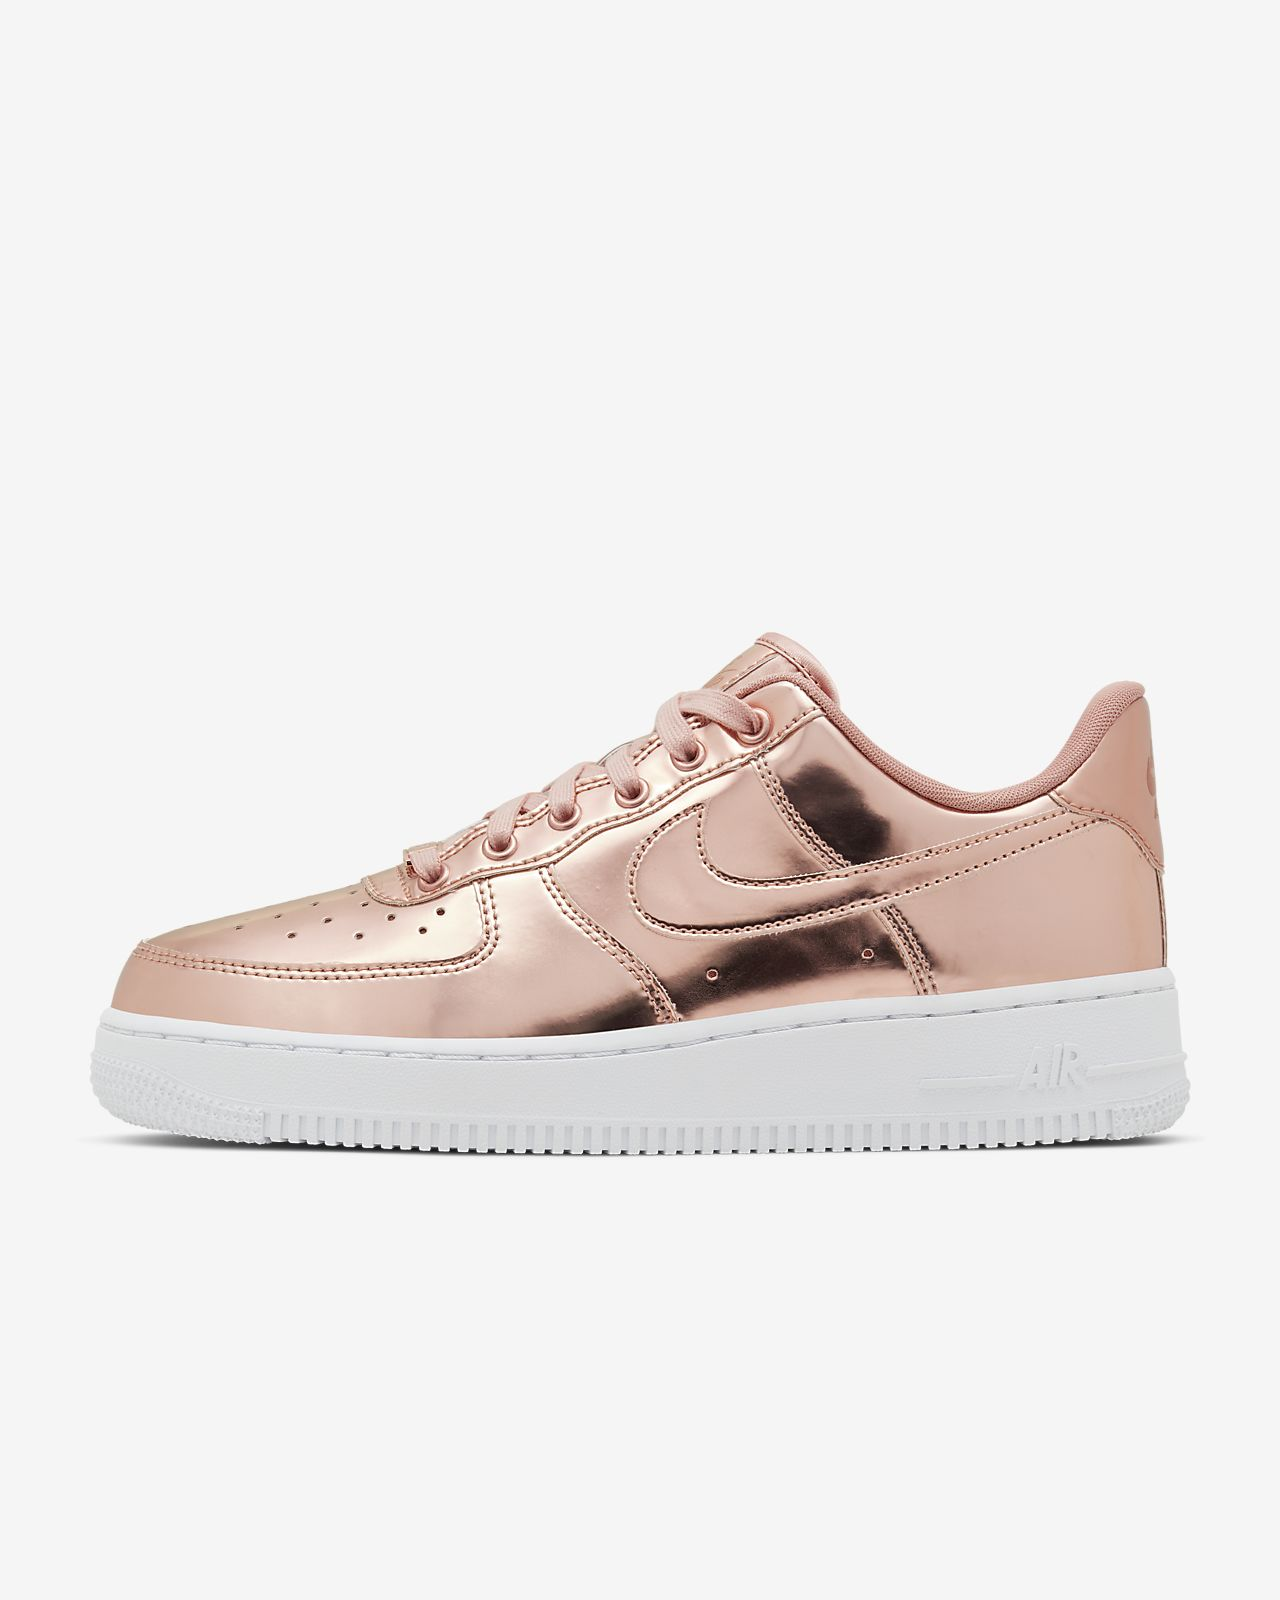 Nike Air Force 1 SP 女鞋